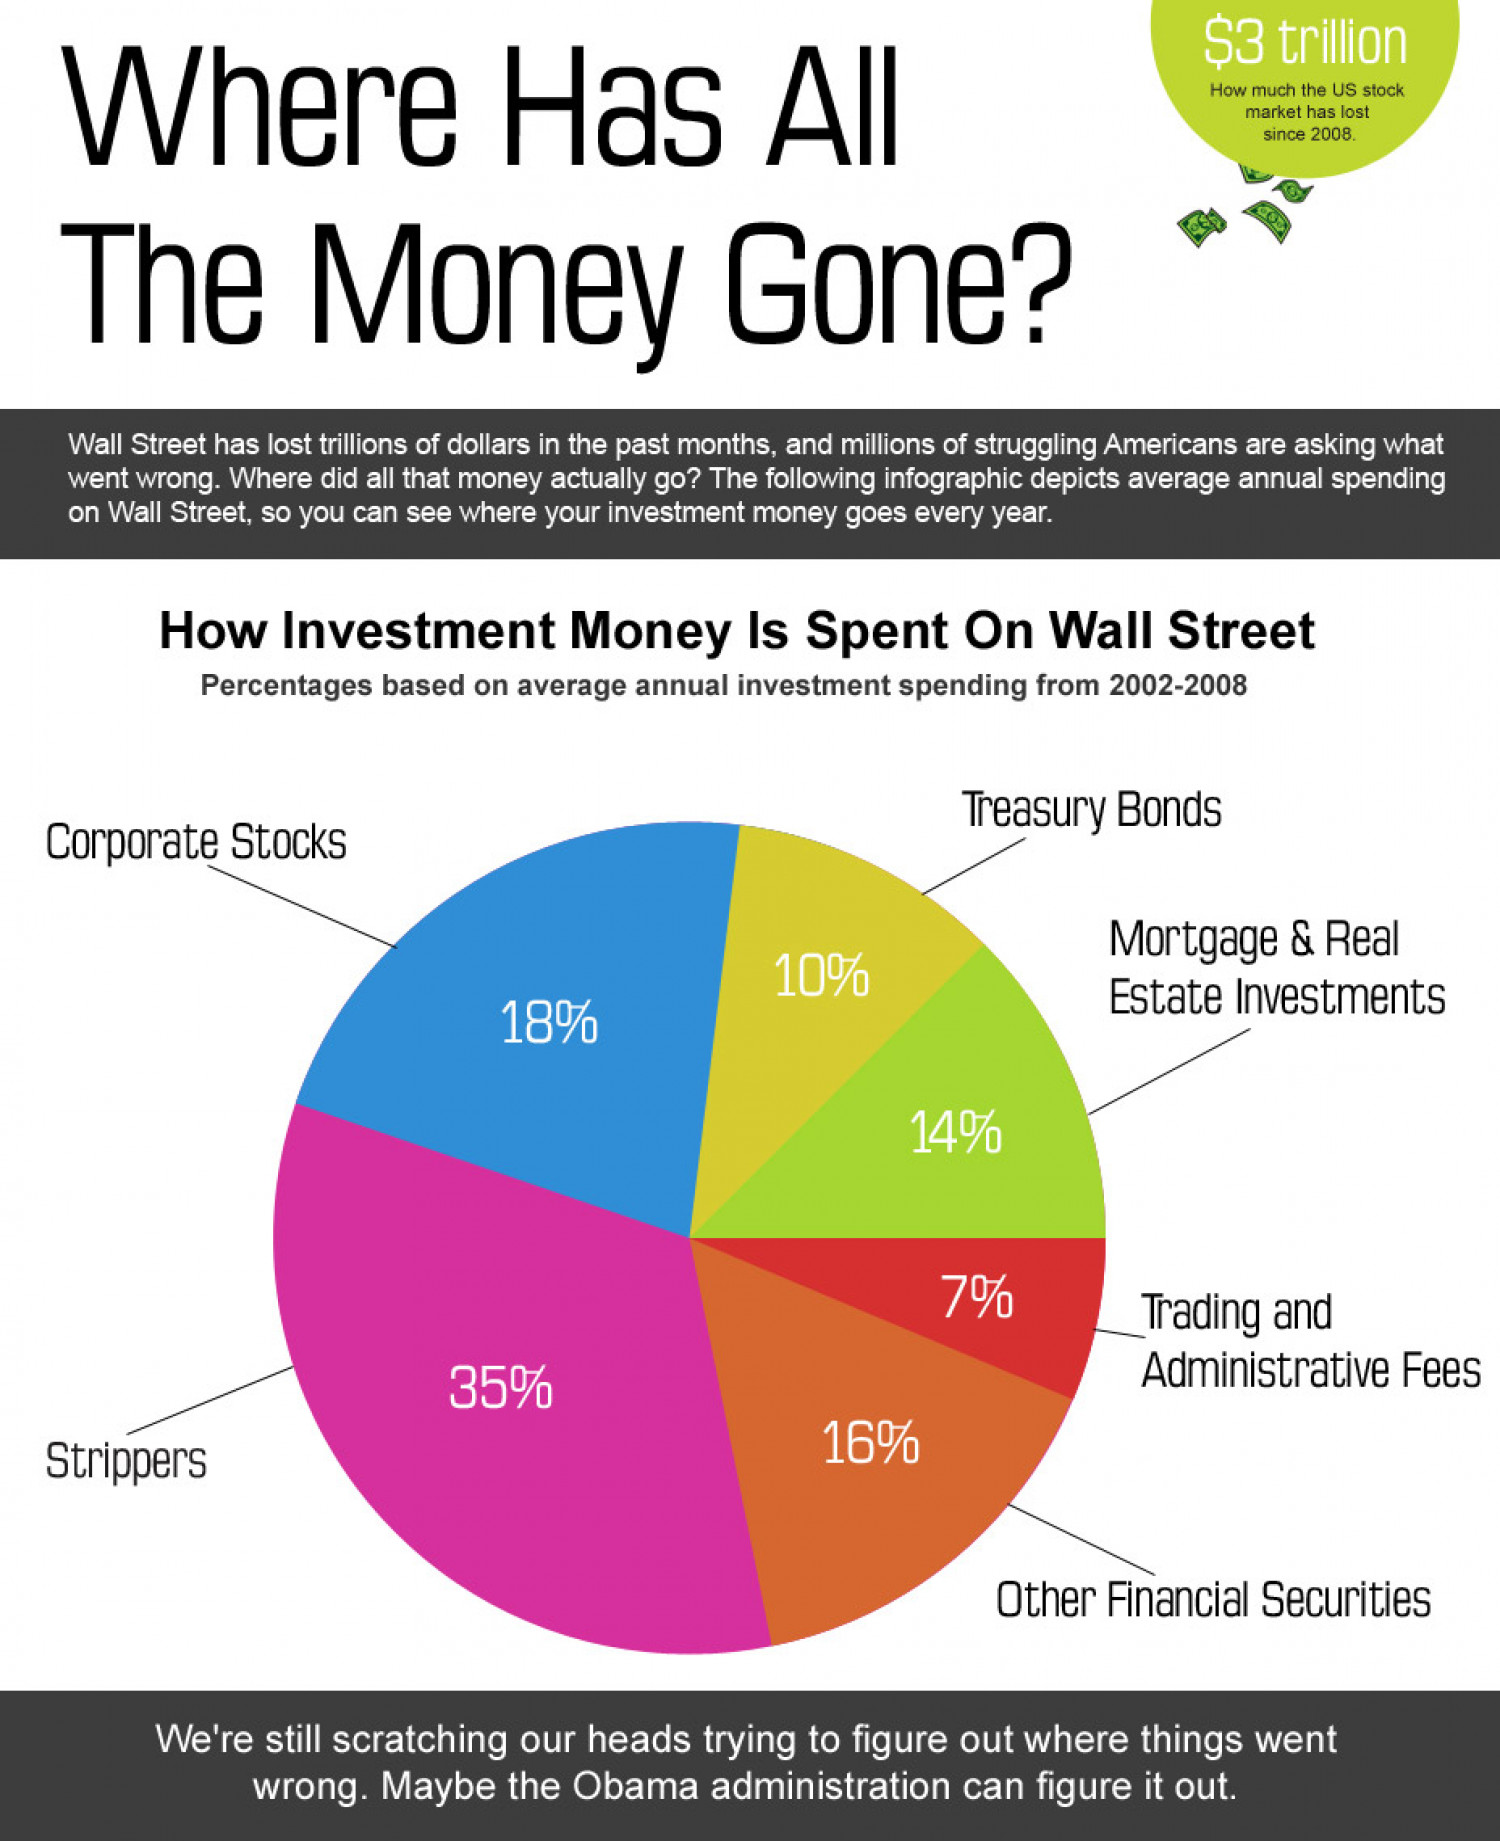 Where Has All The Money Gone? Infographic